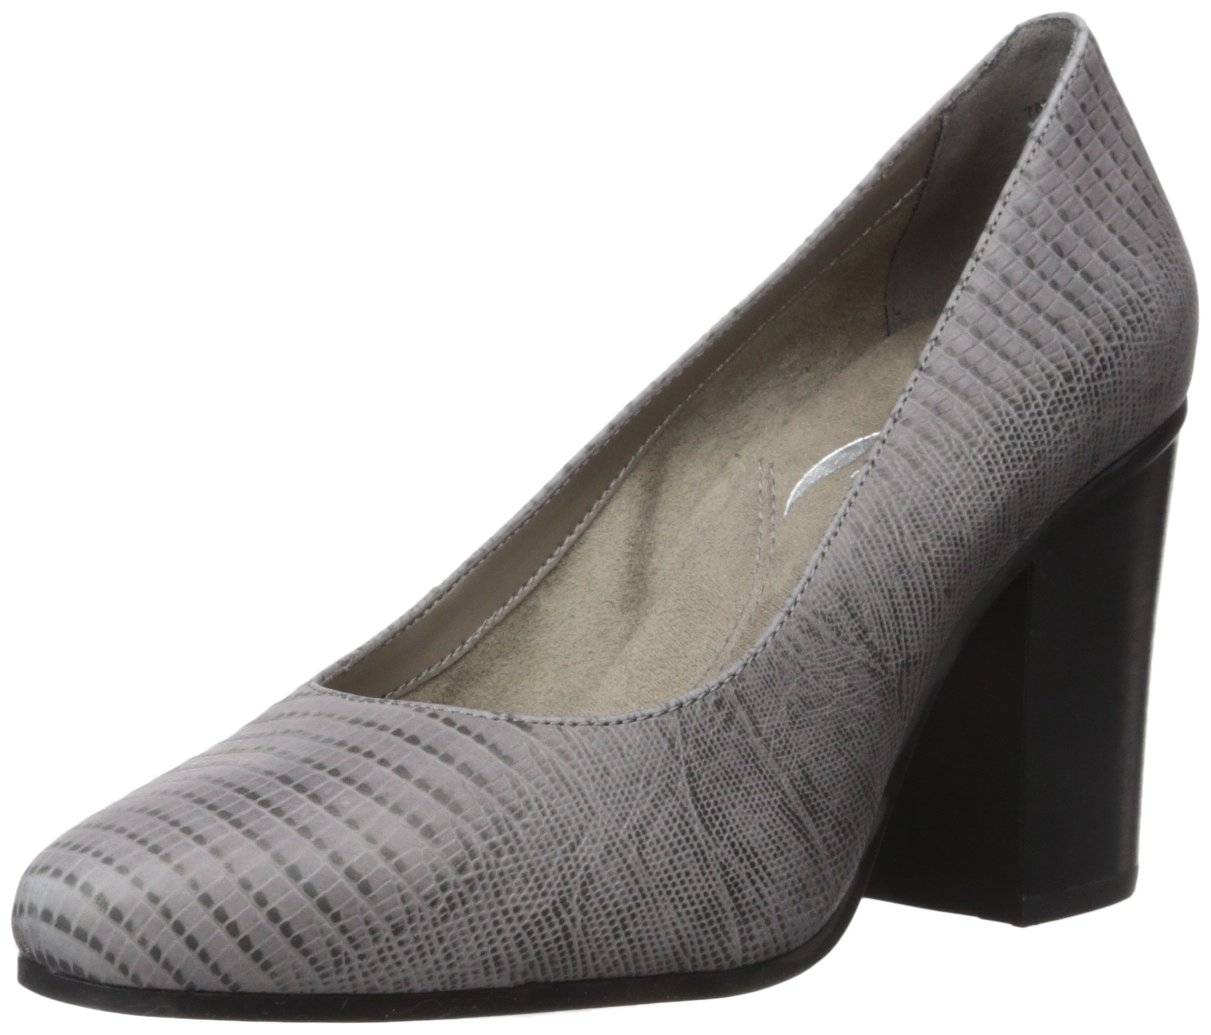 Aerosoles Women's Union Square Pump B073RPYNV4 12 B(M) US|Grey Lizard